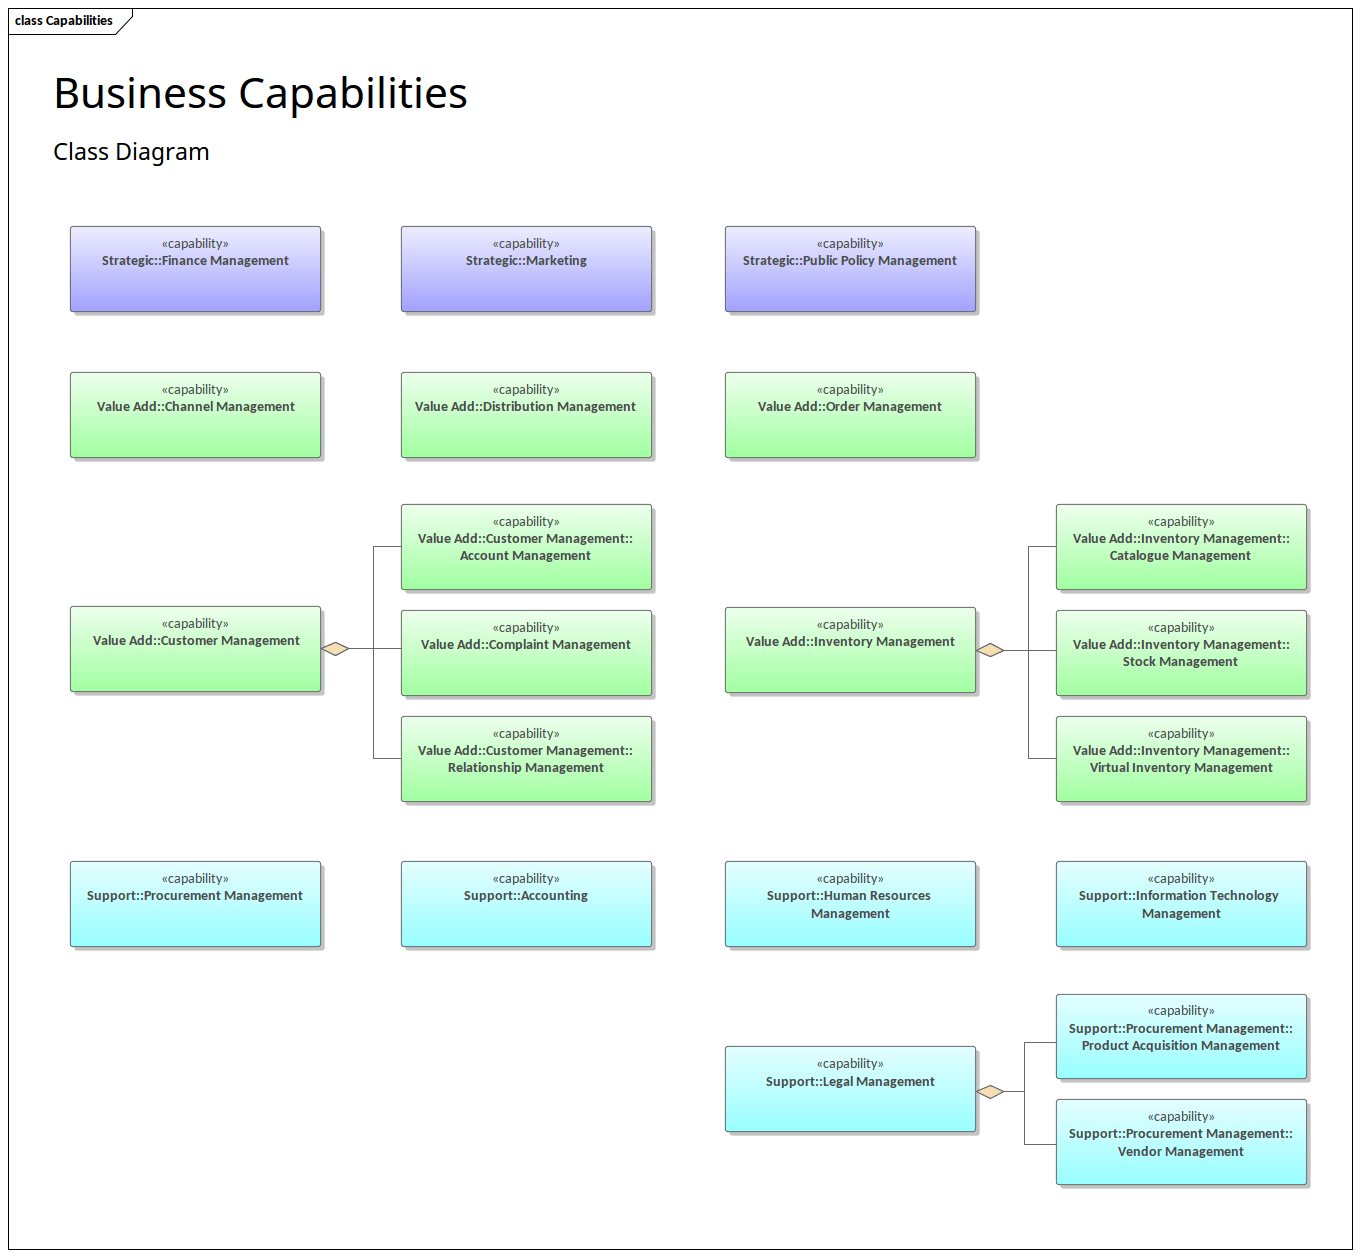 hight resolution of an example of using a business capabilities model as defined in a class diagram capabilities can be modeled using a stereotyped uml class element